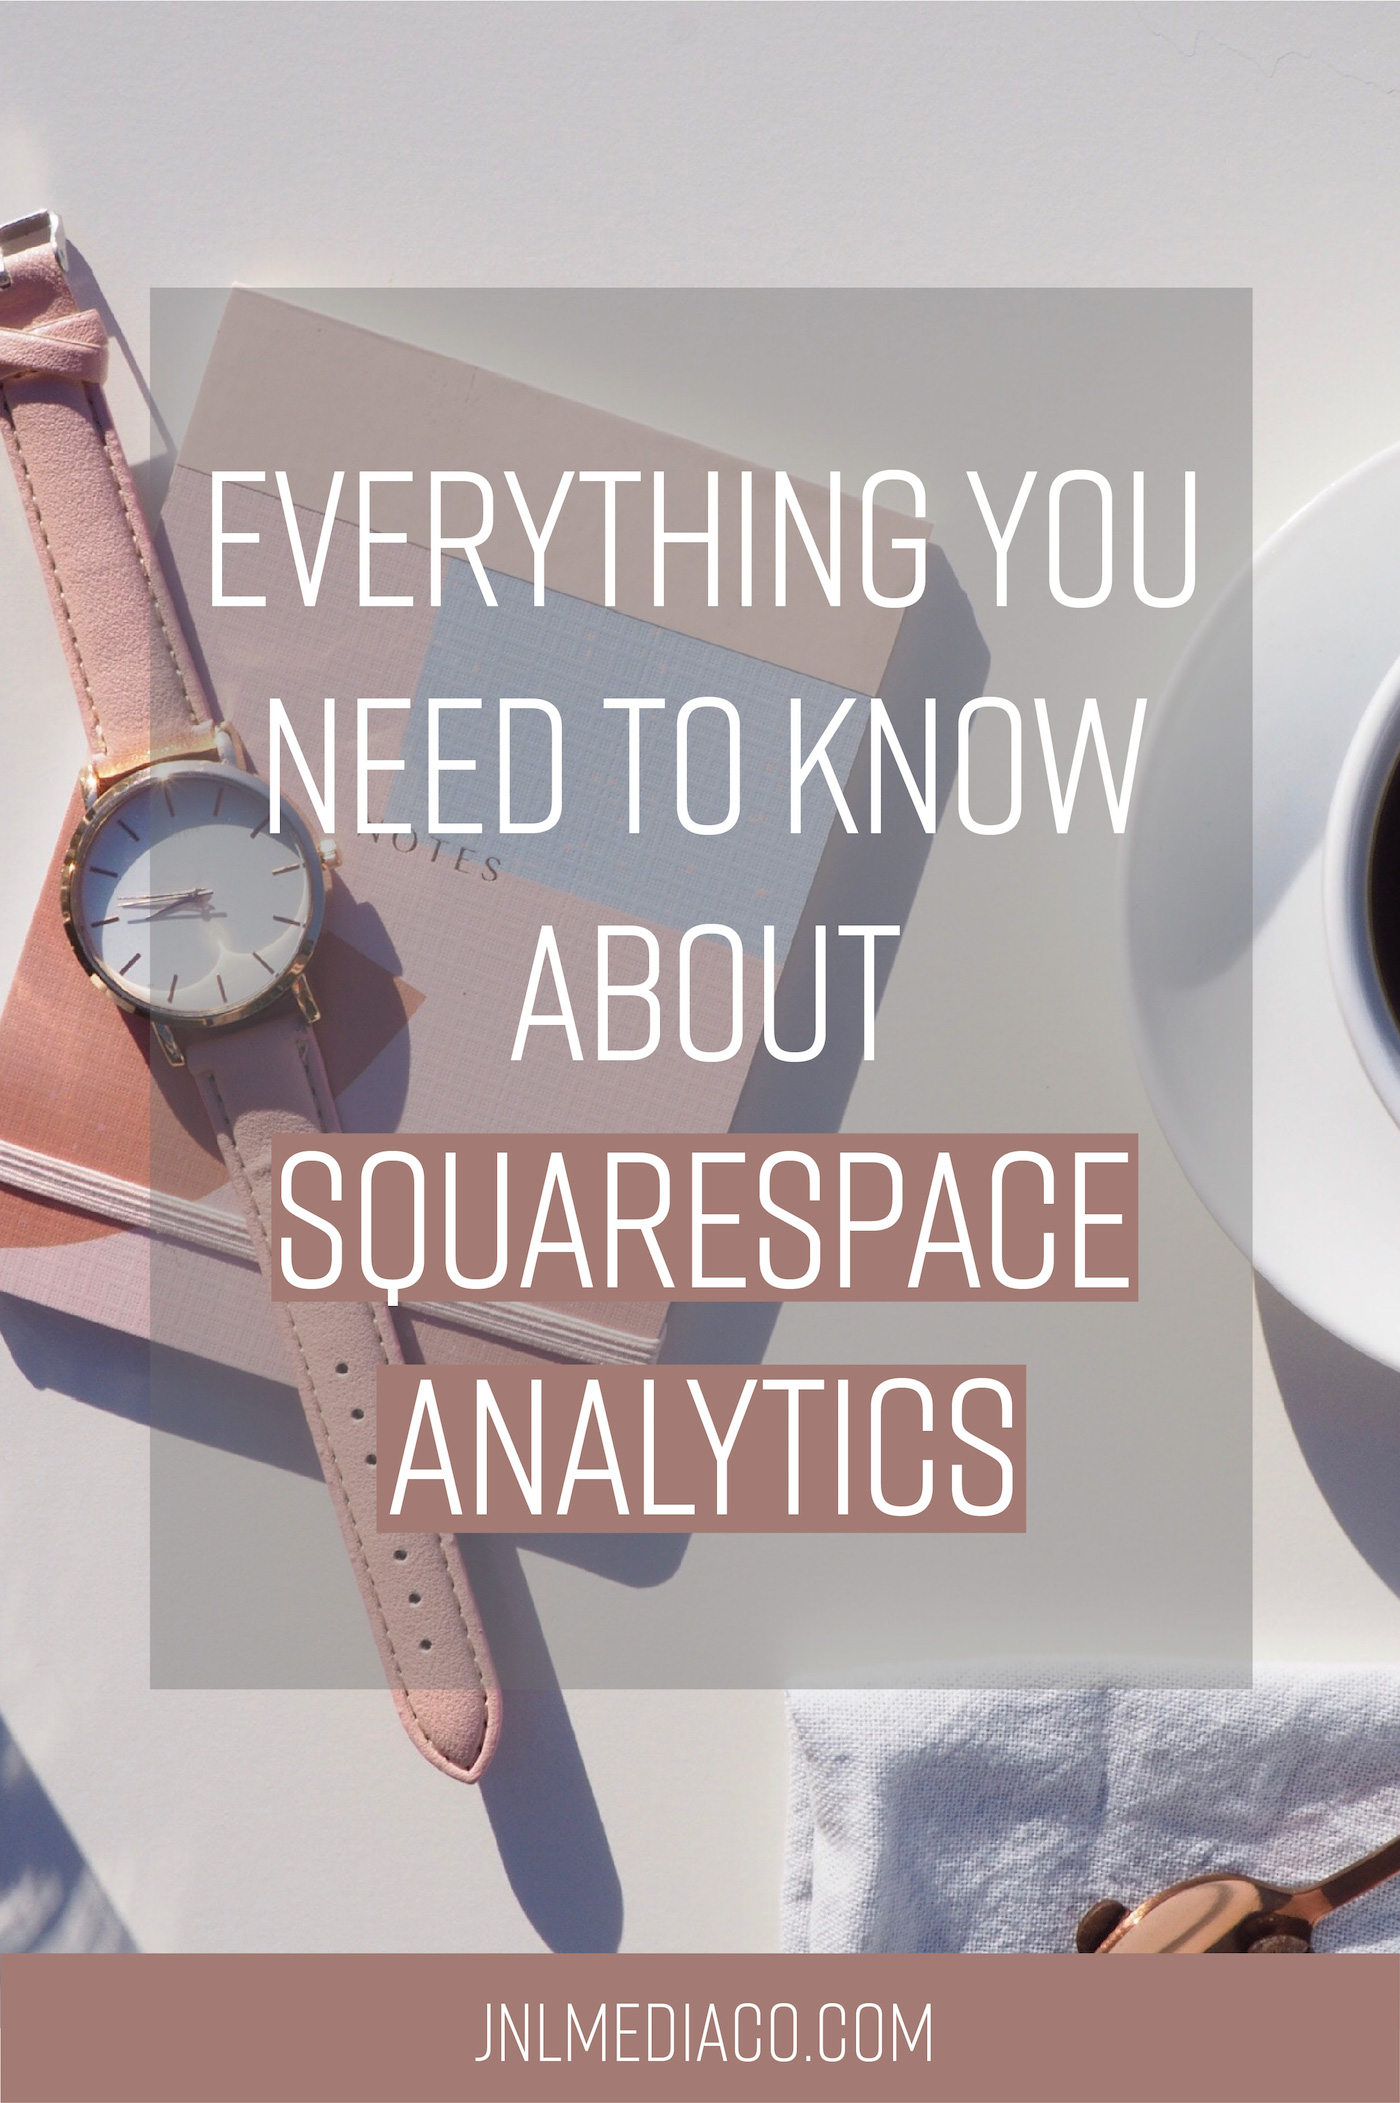 You've most likely heard of  Google Analytics  but have you heard of Squarespace Analytics?Yes, Squarespace has its own version of Google Analytics that you can access from the backend of your site. If you haven't heard of Squarespace Analytics then for sure read on because I'm going to be covering everything you need to know about it.